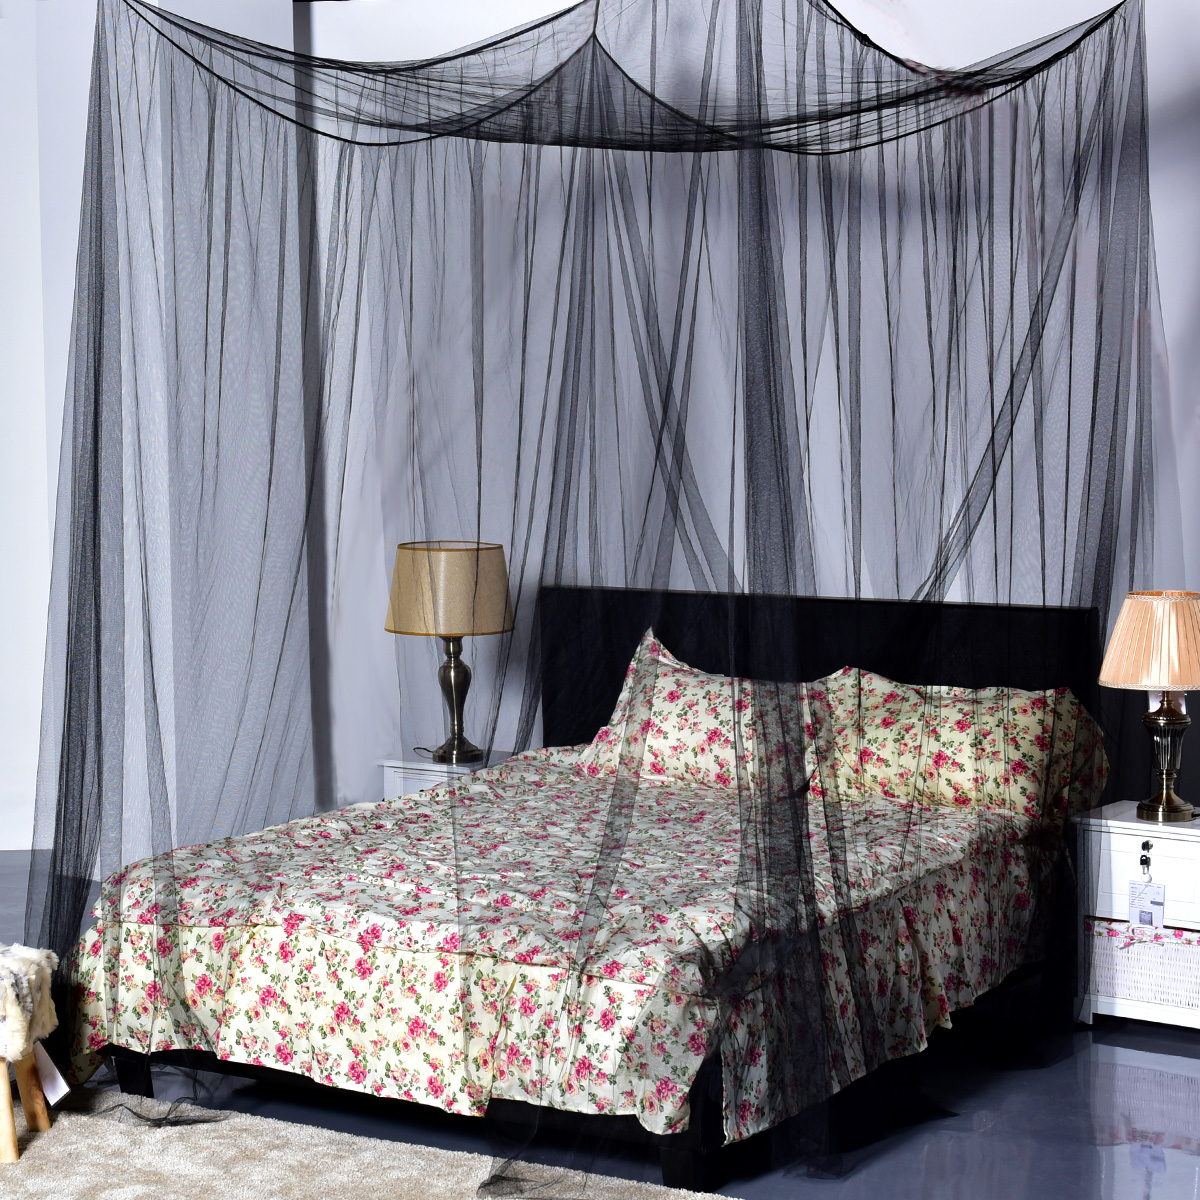 4 Corner Post Bed Canopy Mosquito Net Full Queen King Size Netting Bedding Black : king size mosquito net canopy - memphite.com